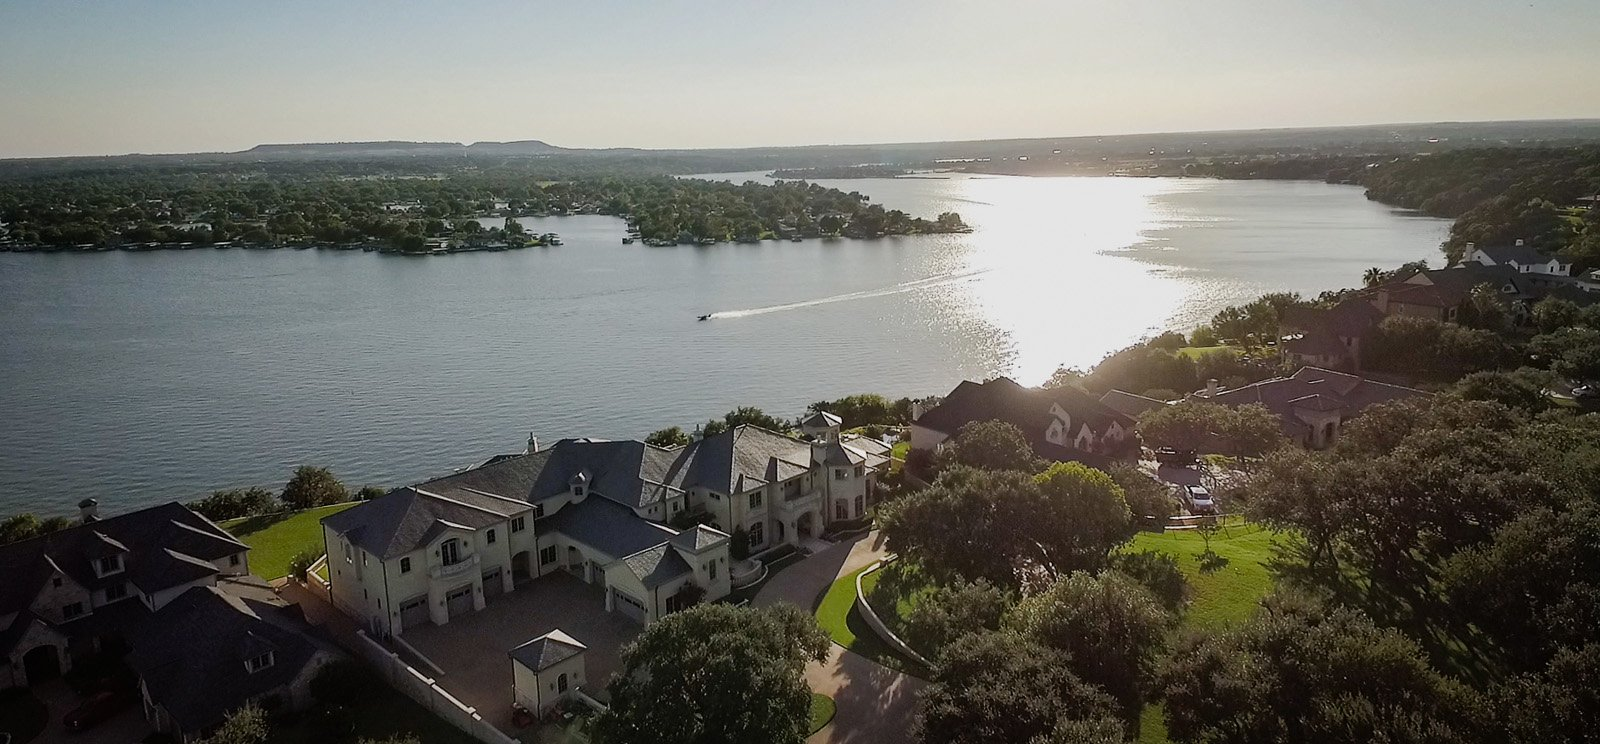 Properties in the Lake Granbury